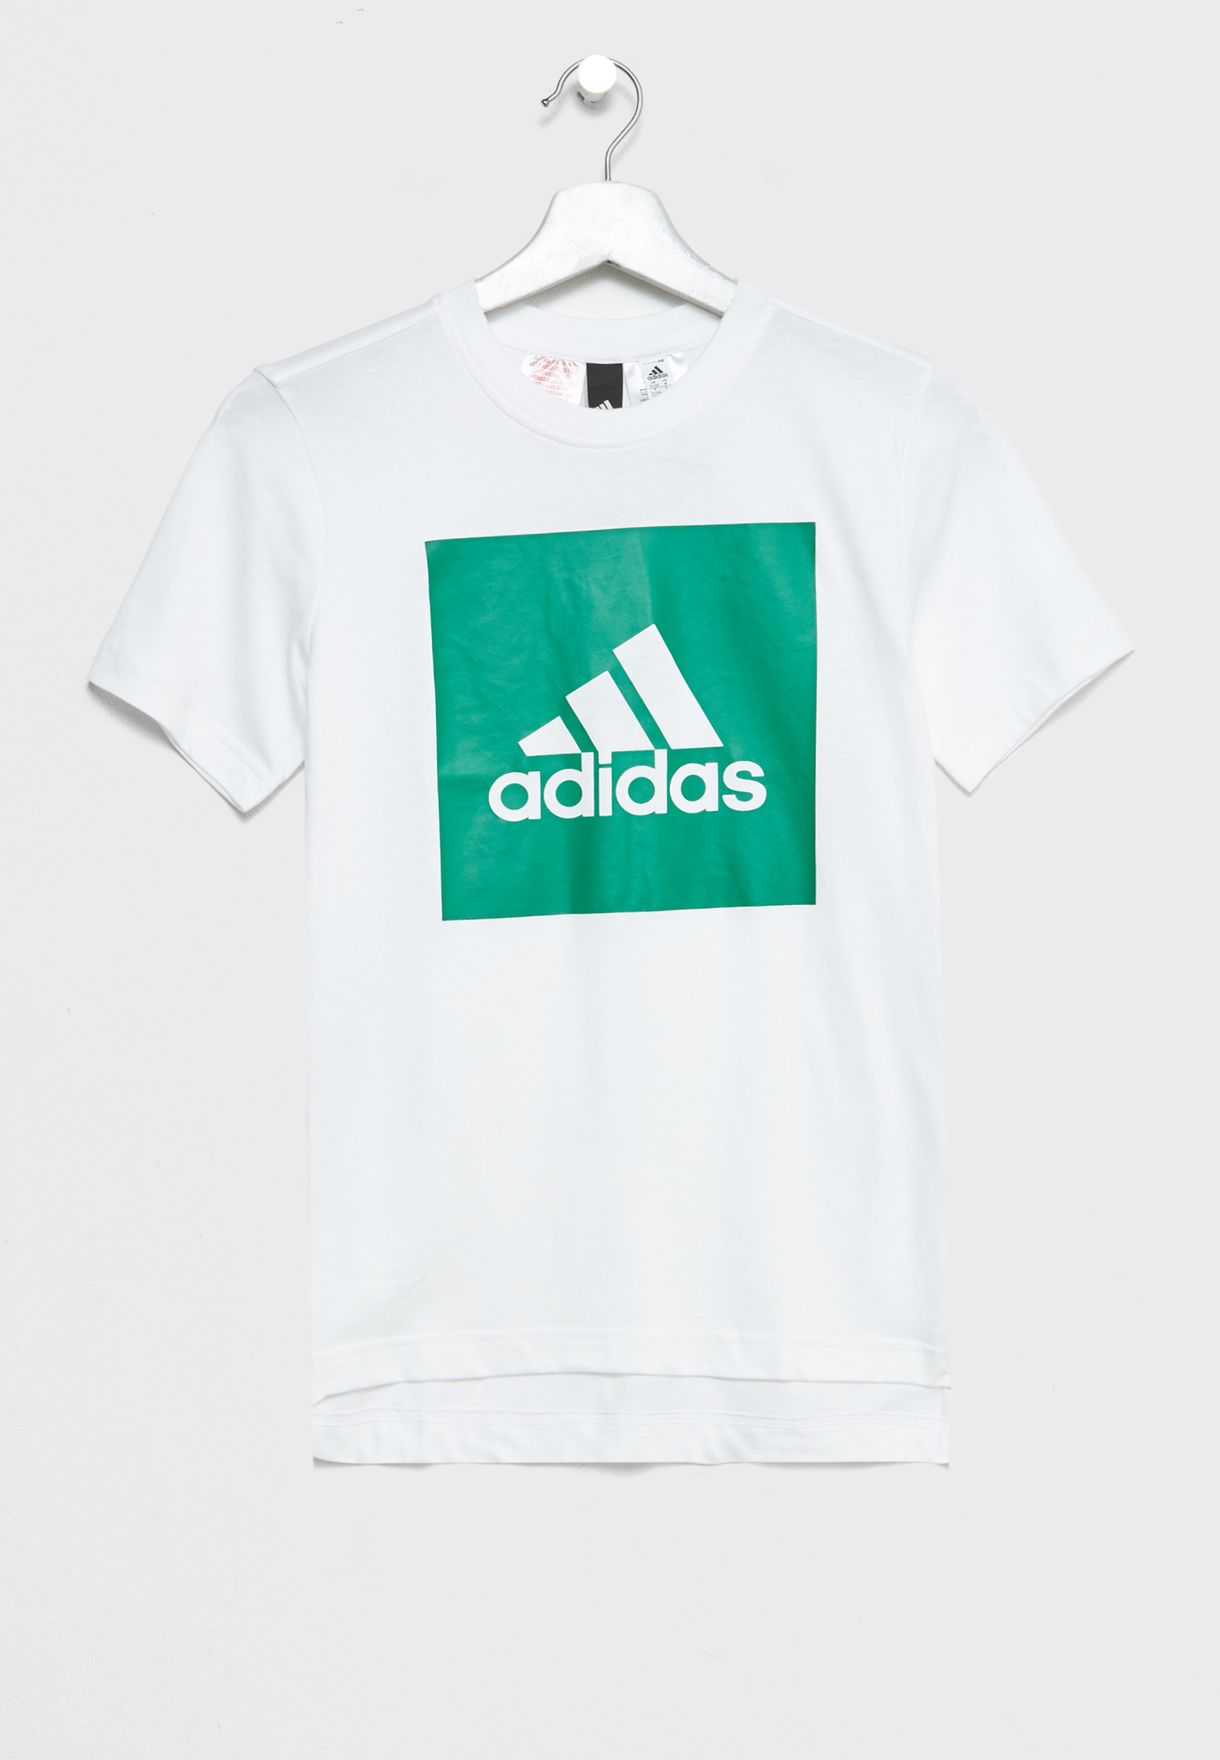 c9e877139ccdbe Shop adidas white Youth Logo T-Shirt CF6518 for Kids in Kuwait ...